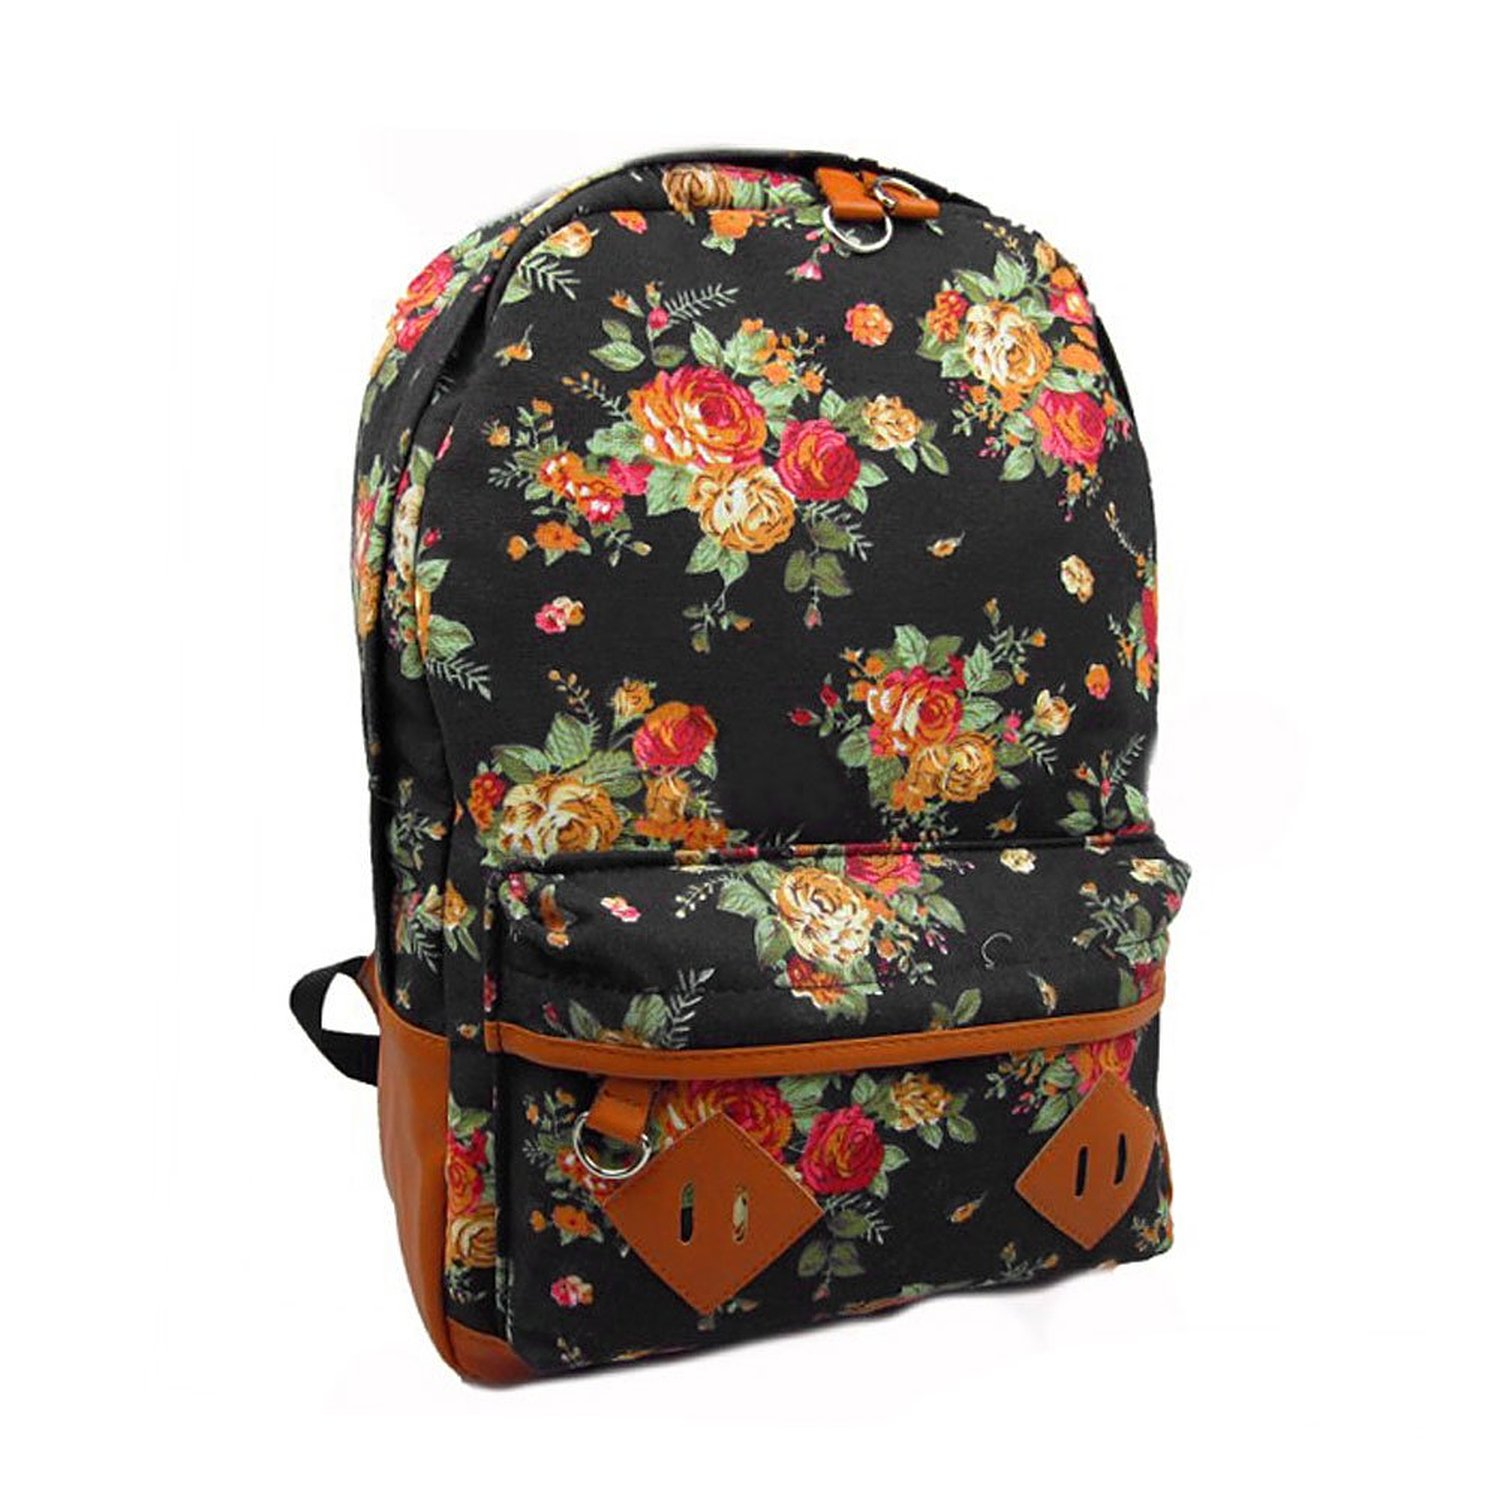 FUNOC Women Ladies Canvas Flower Floral Print School Shoulder Bag Backpack Rucksack: Handbags: Amazon.com